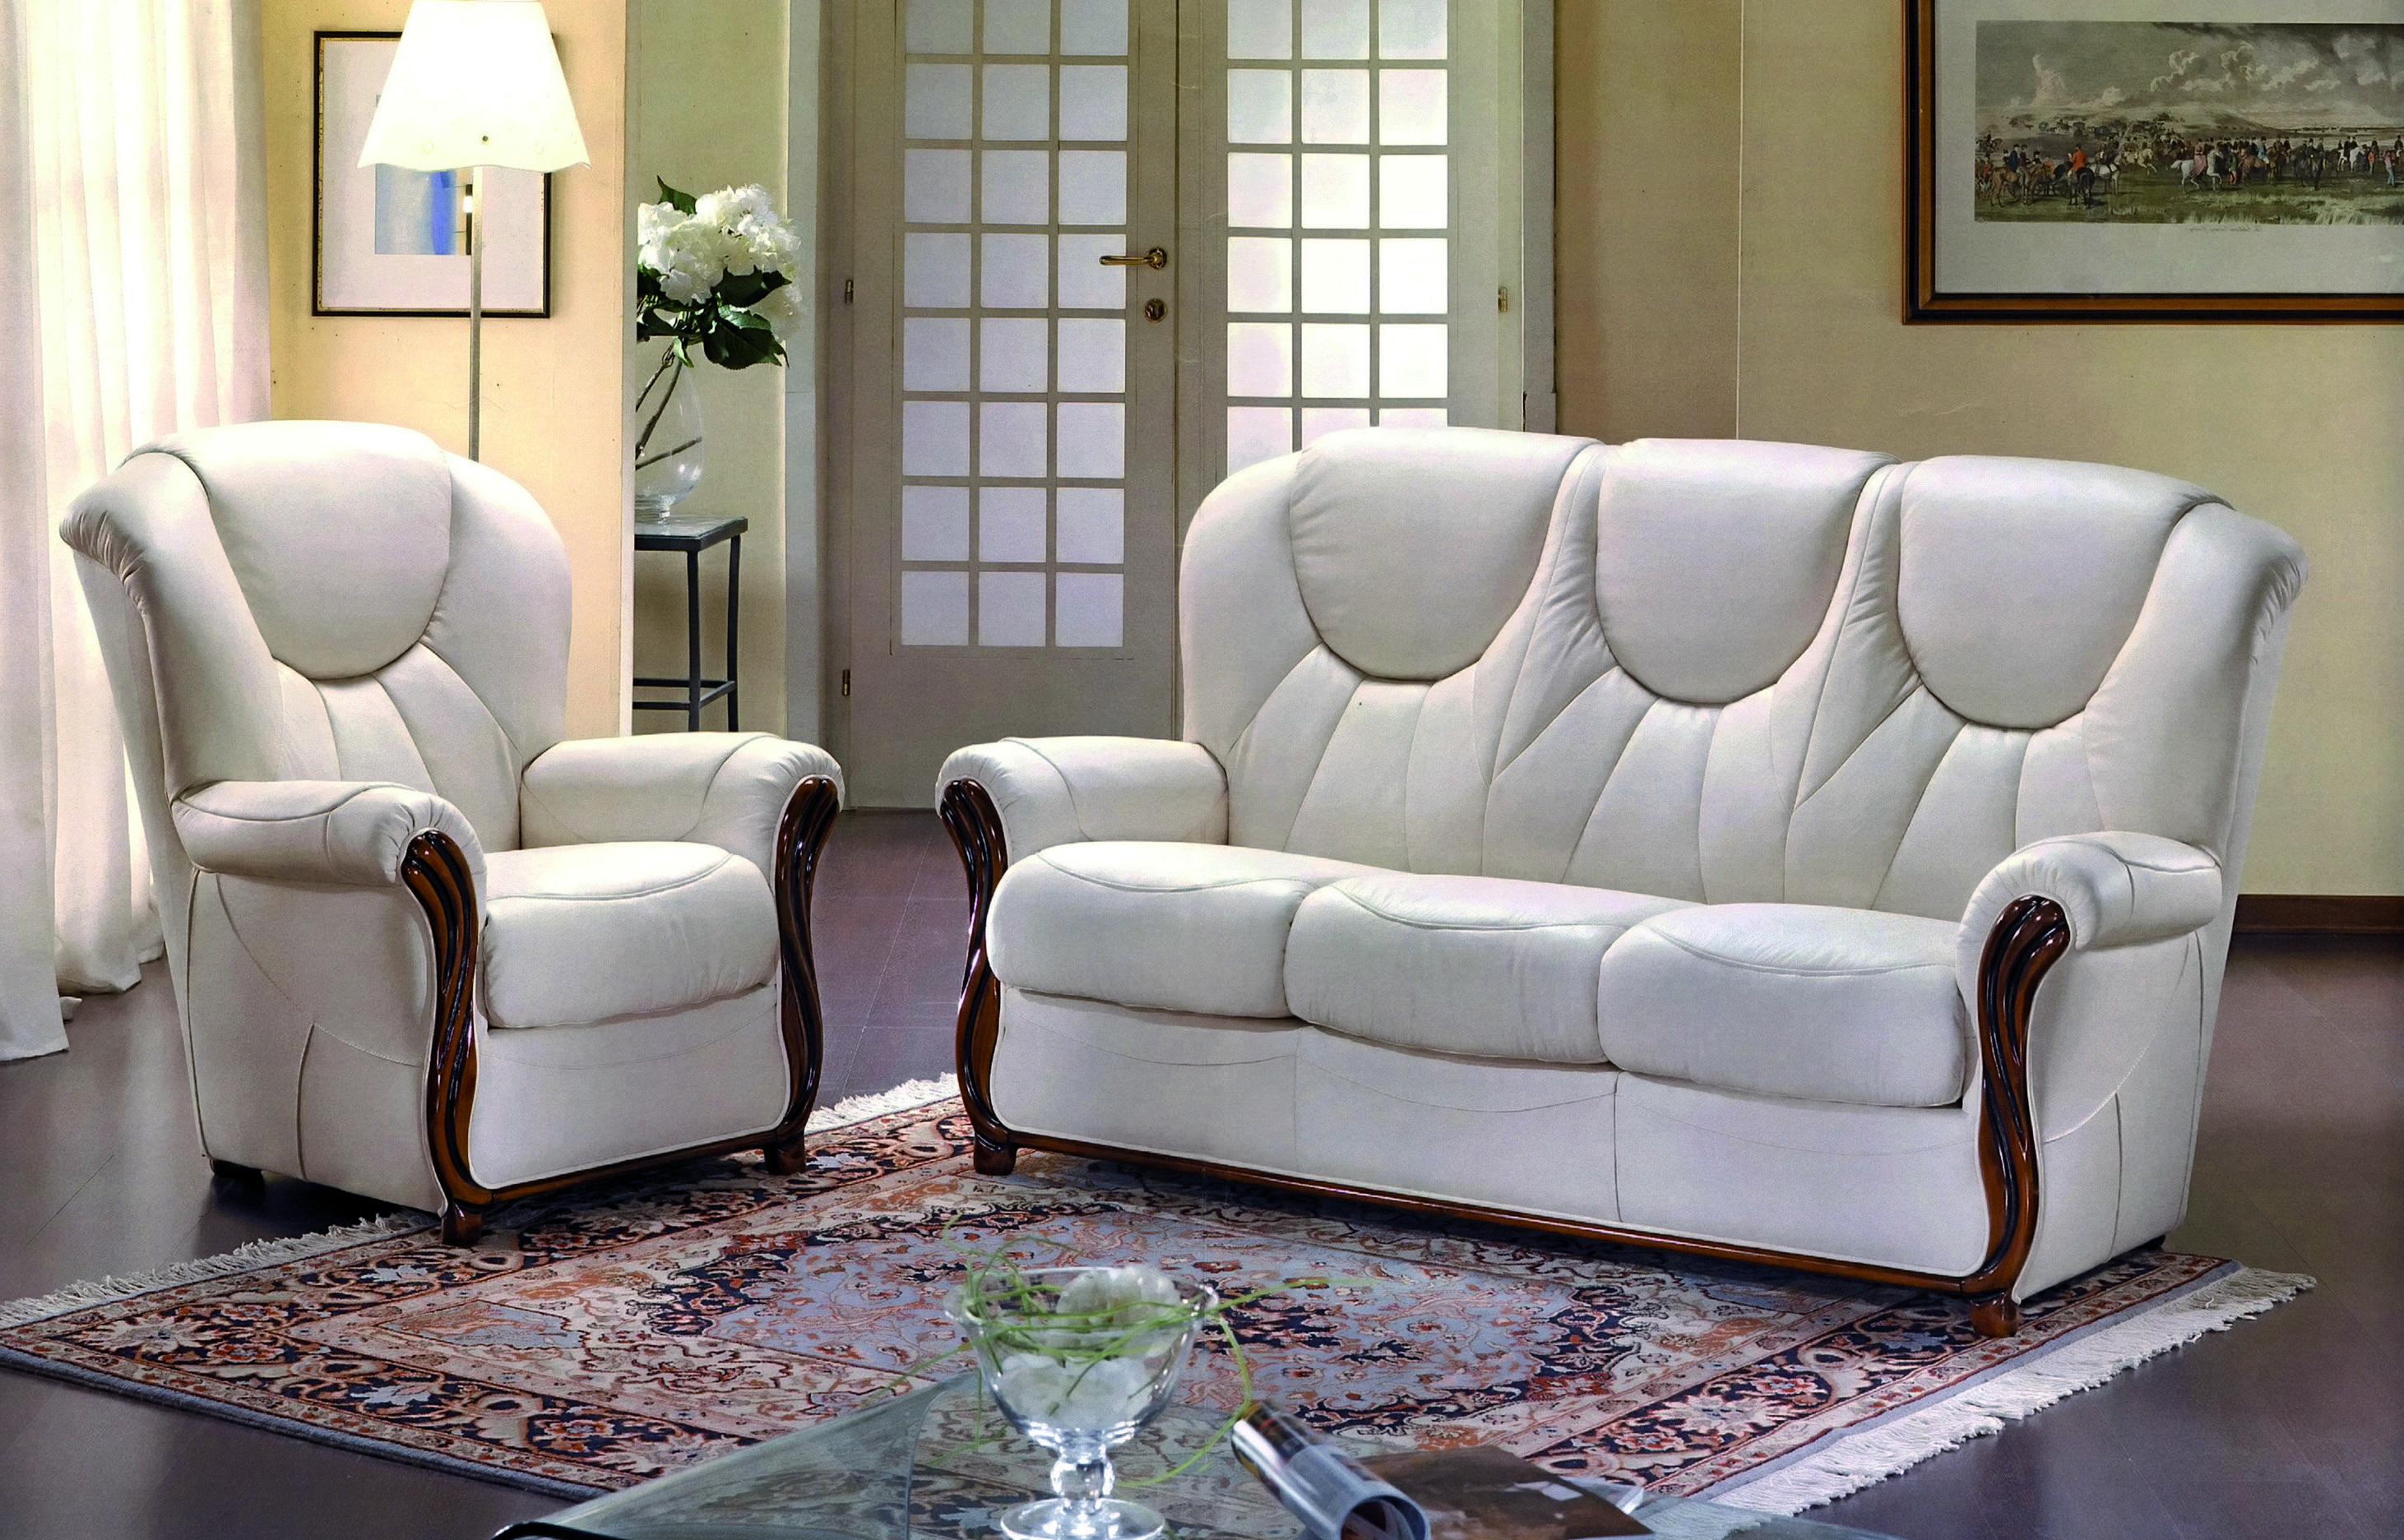 Pinmini Divani On Our Collection Of Leather/fabric Suites With Regard To Newest Gina Grey Leather Sofa Chairs (View 15 of 20)